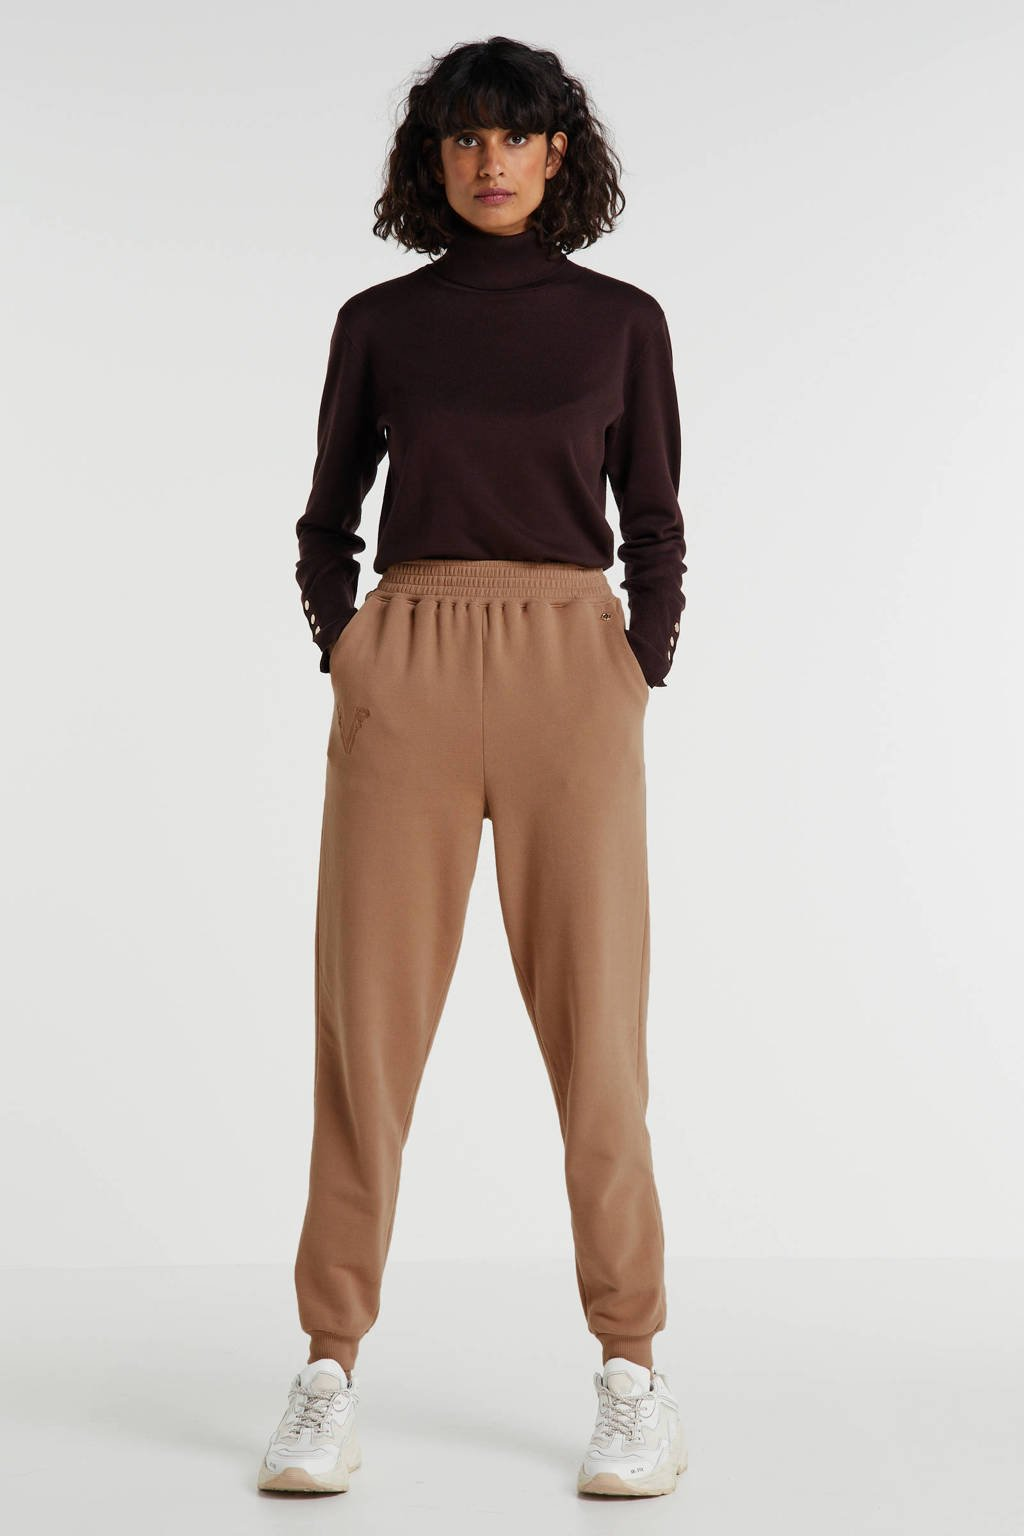 JOSH V high waist straight fit broek PHILI met borduursels camel, Camel